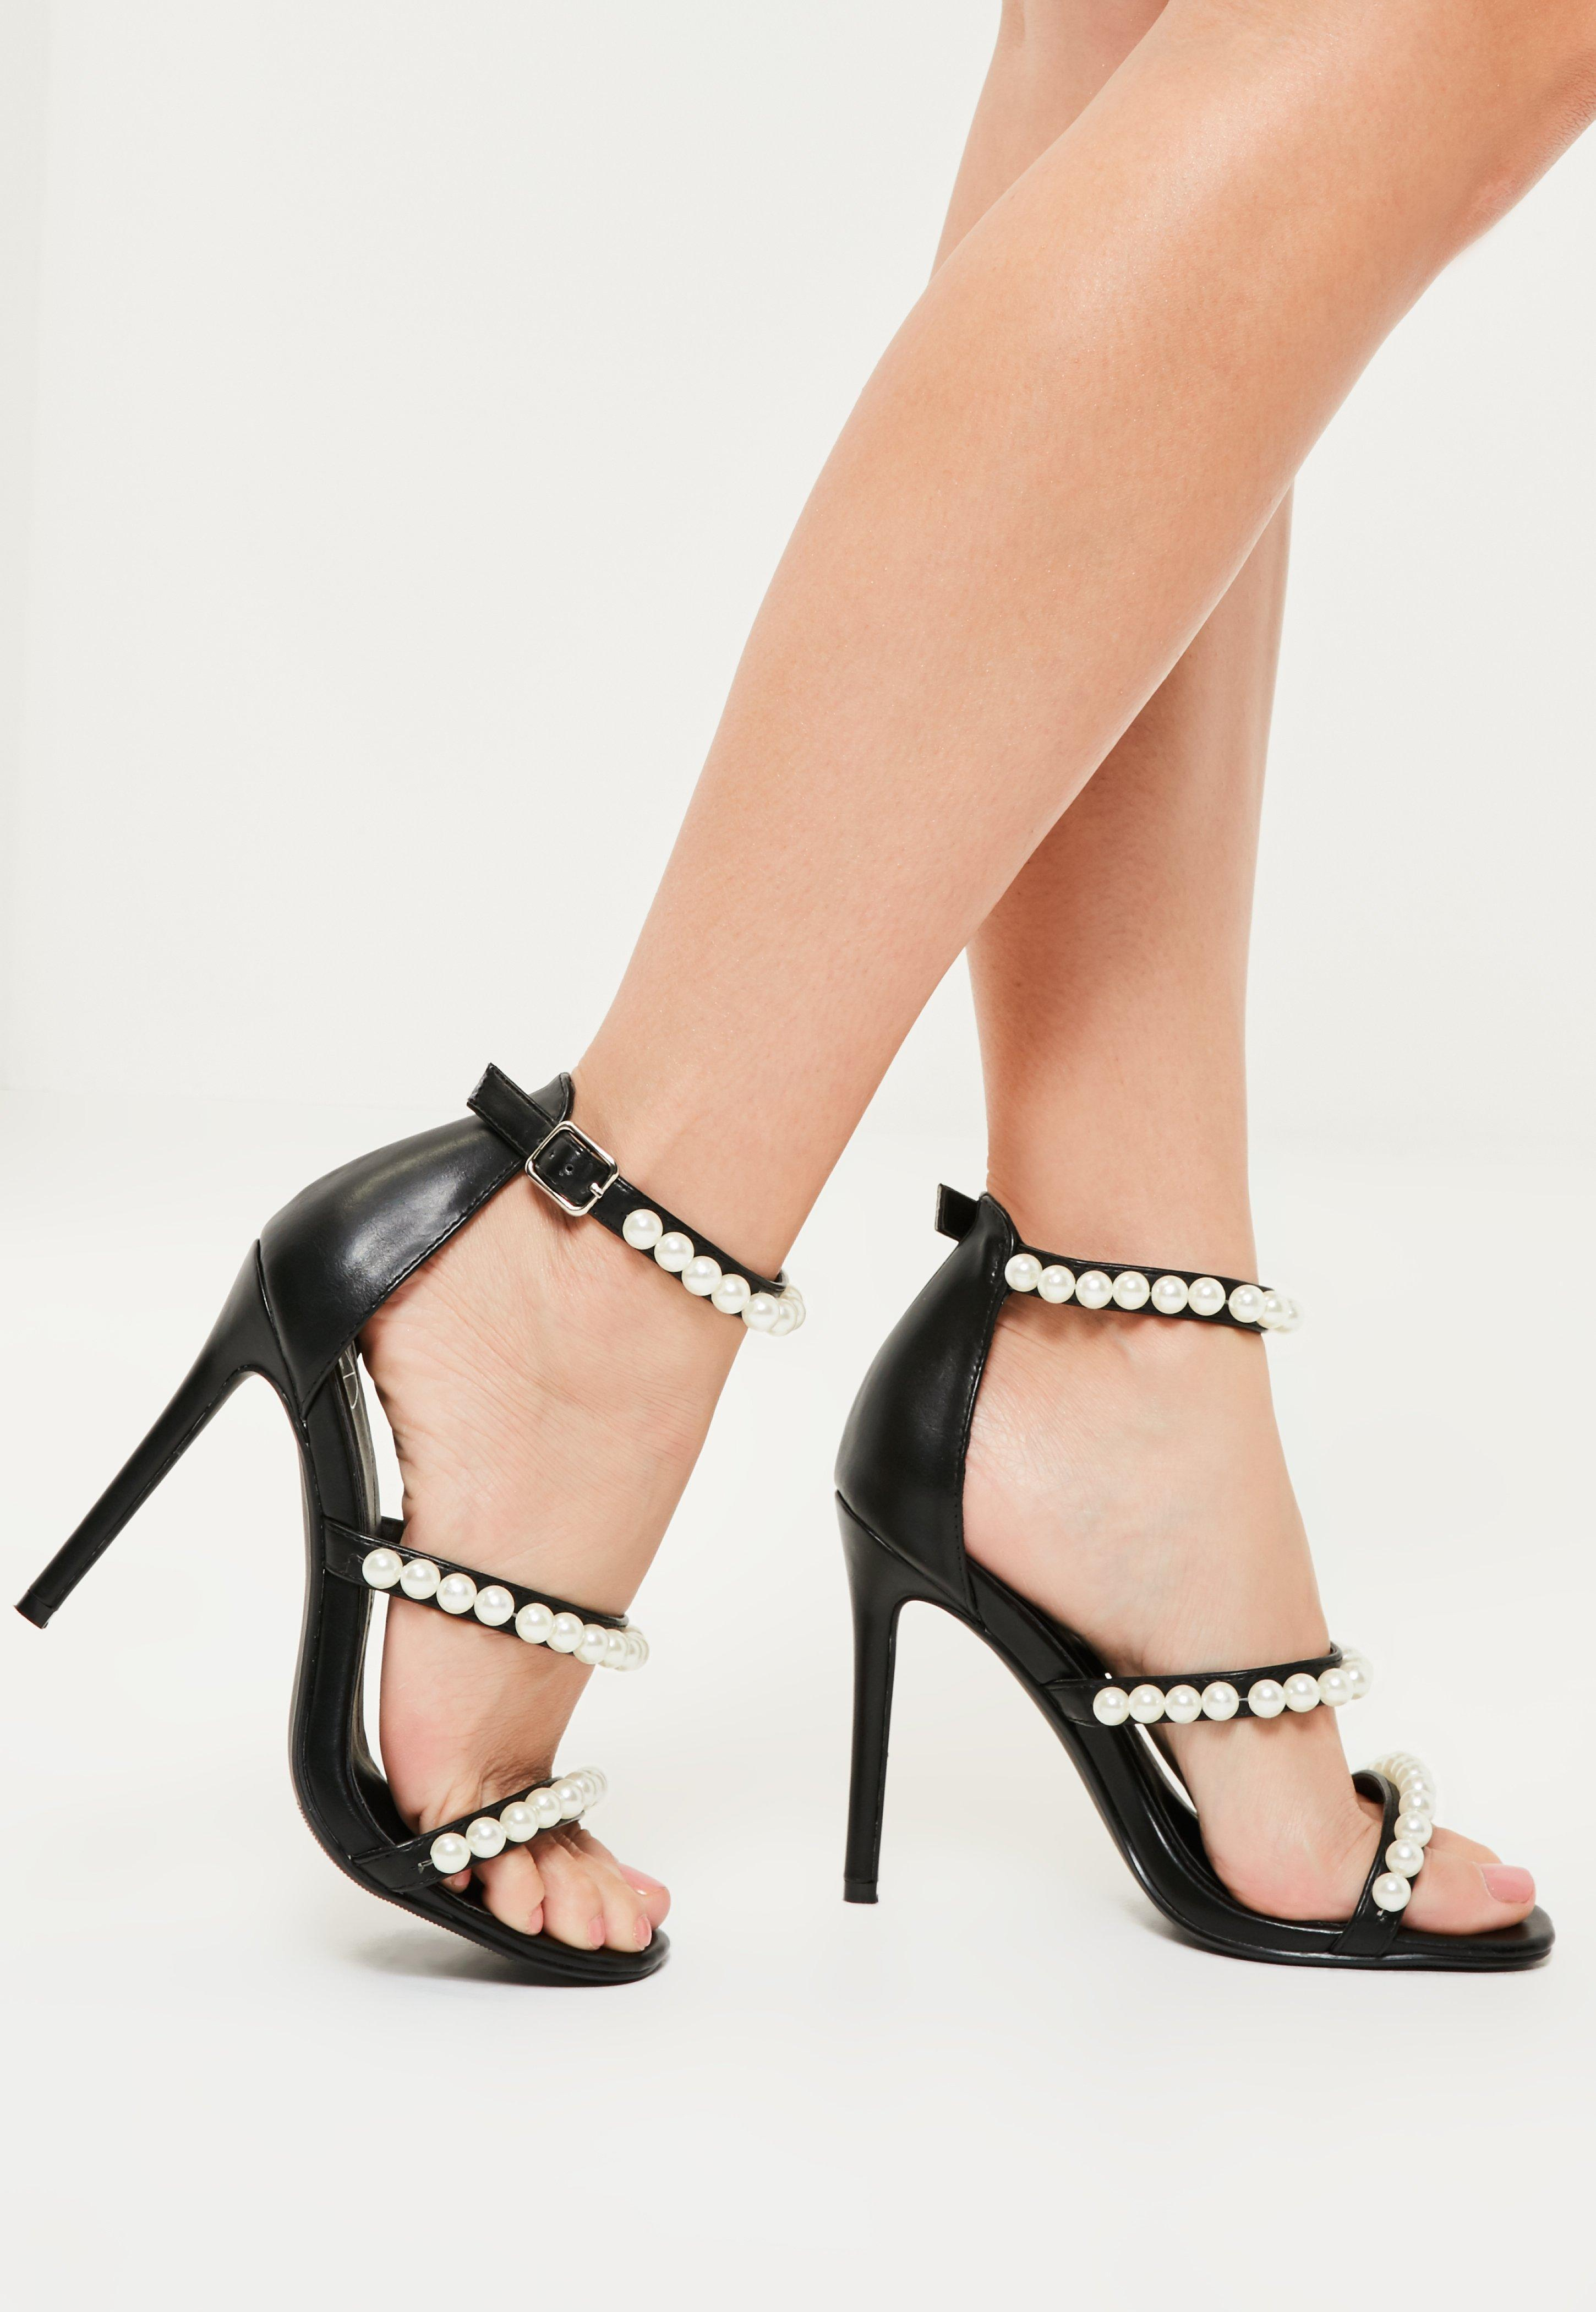 e3a1ca6580 Missguided Black Pearl Embellished Three Strap Barely There Heels in ...